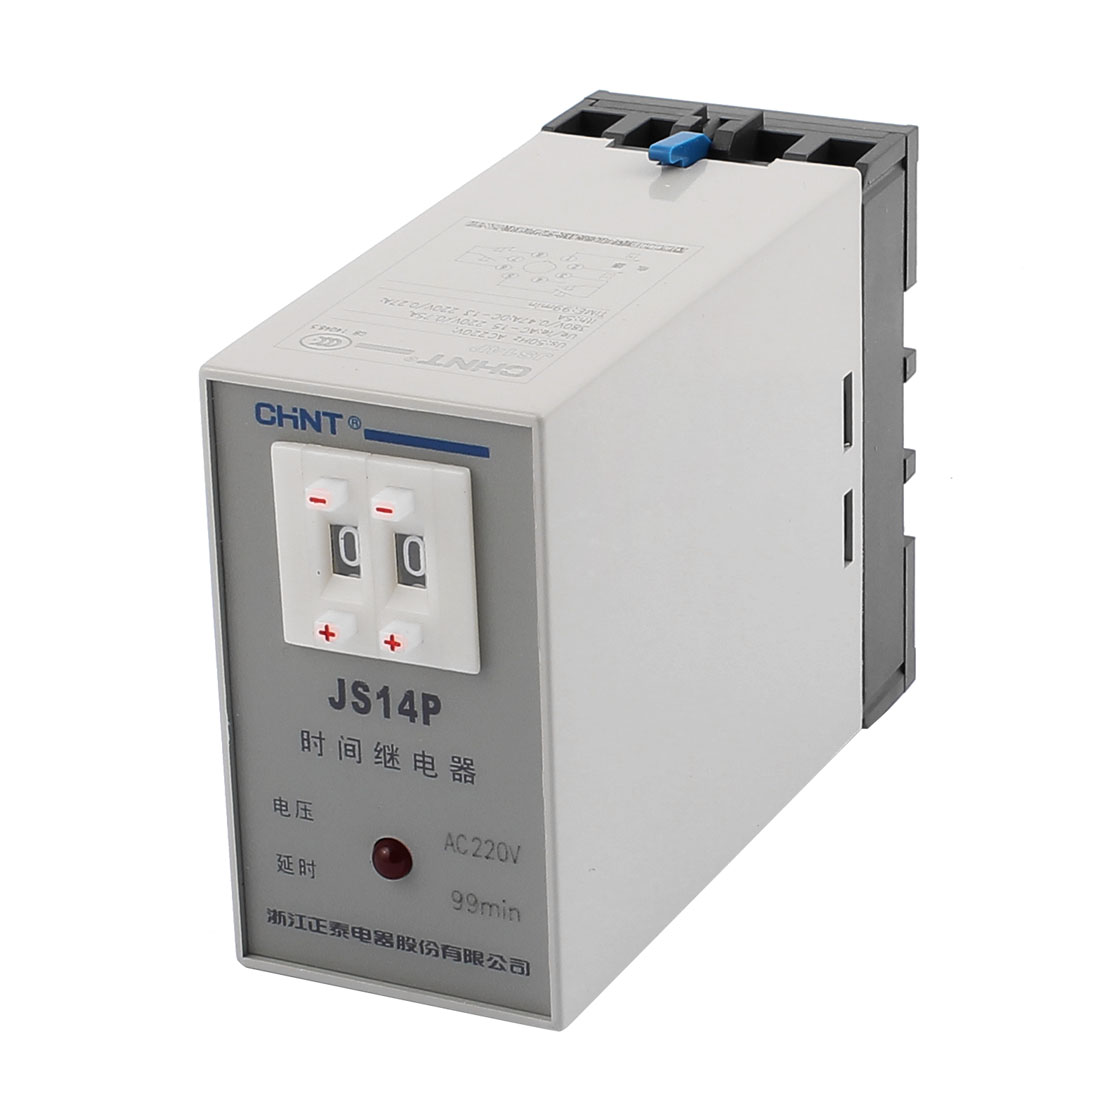 JS14P AC 220V 1-99 Minutes Two Adjustment Power On Delay Timer Digital Display Time Relay